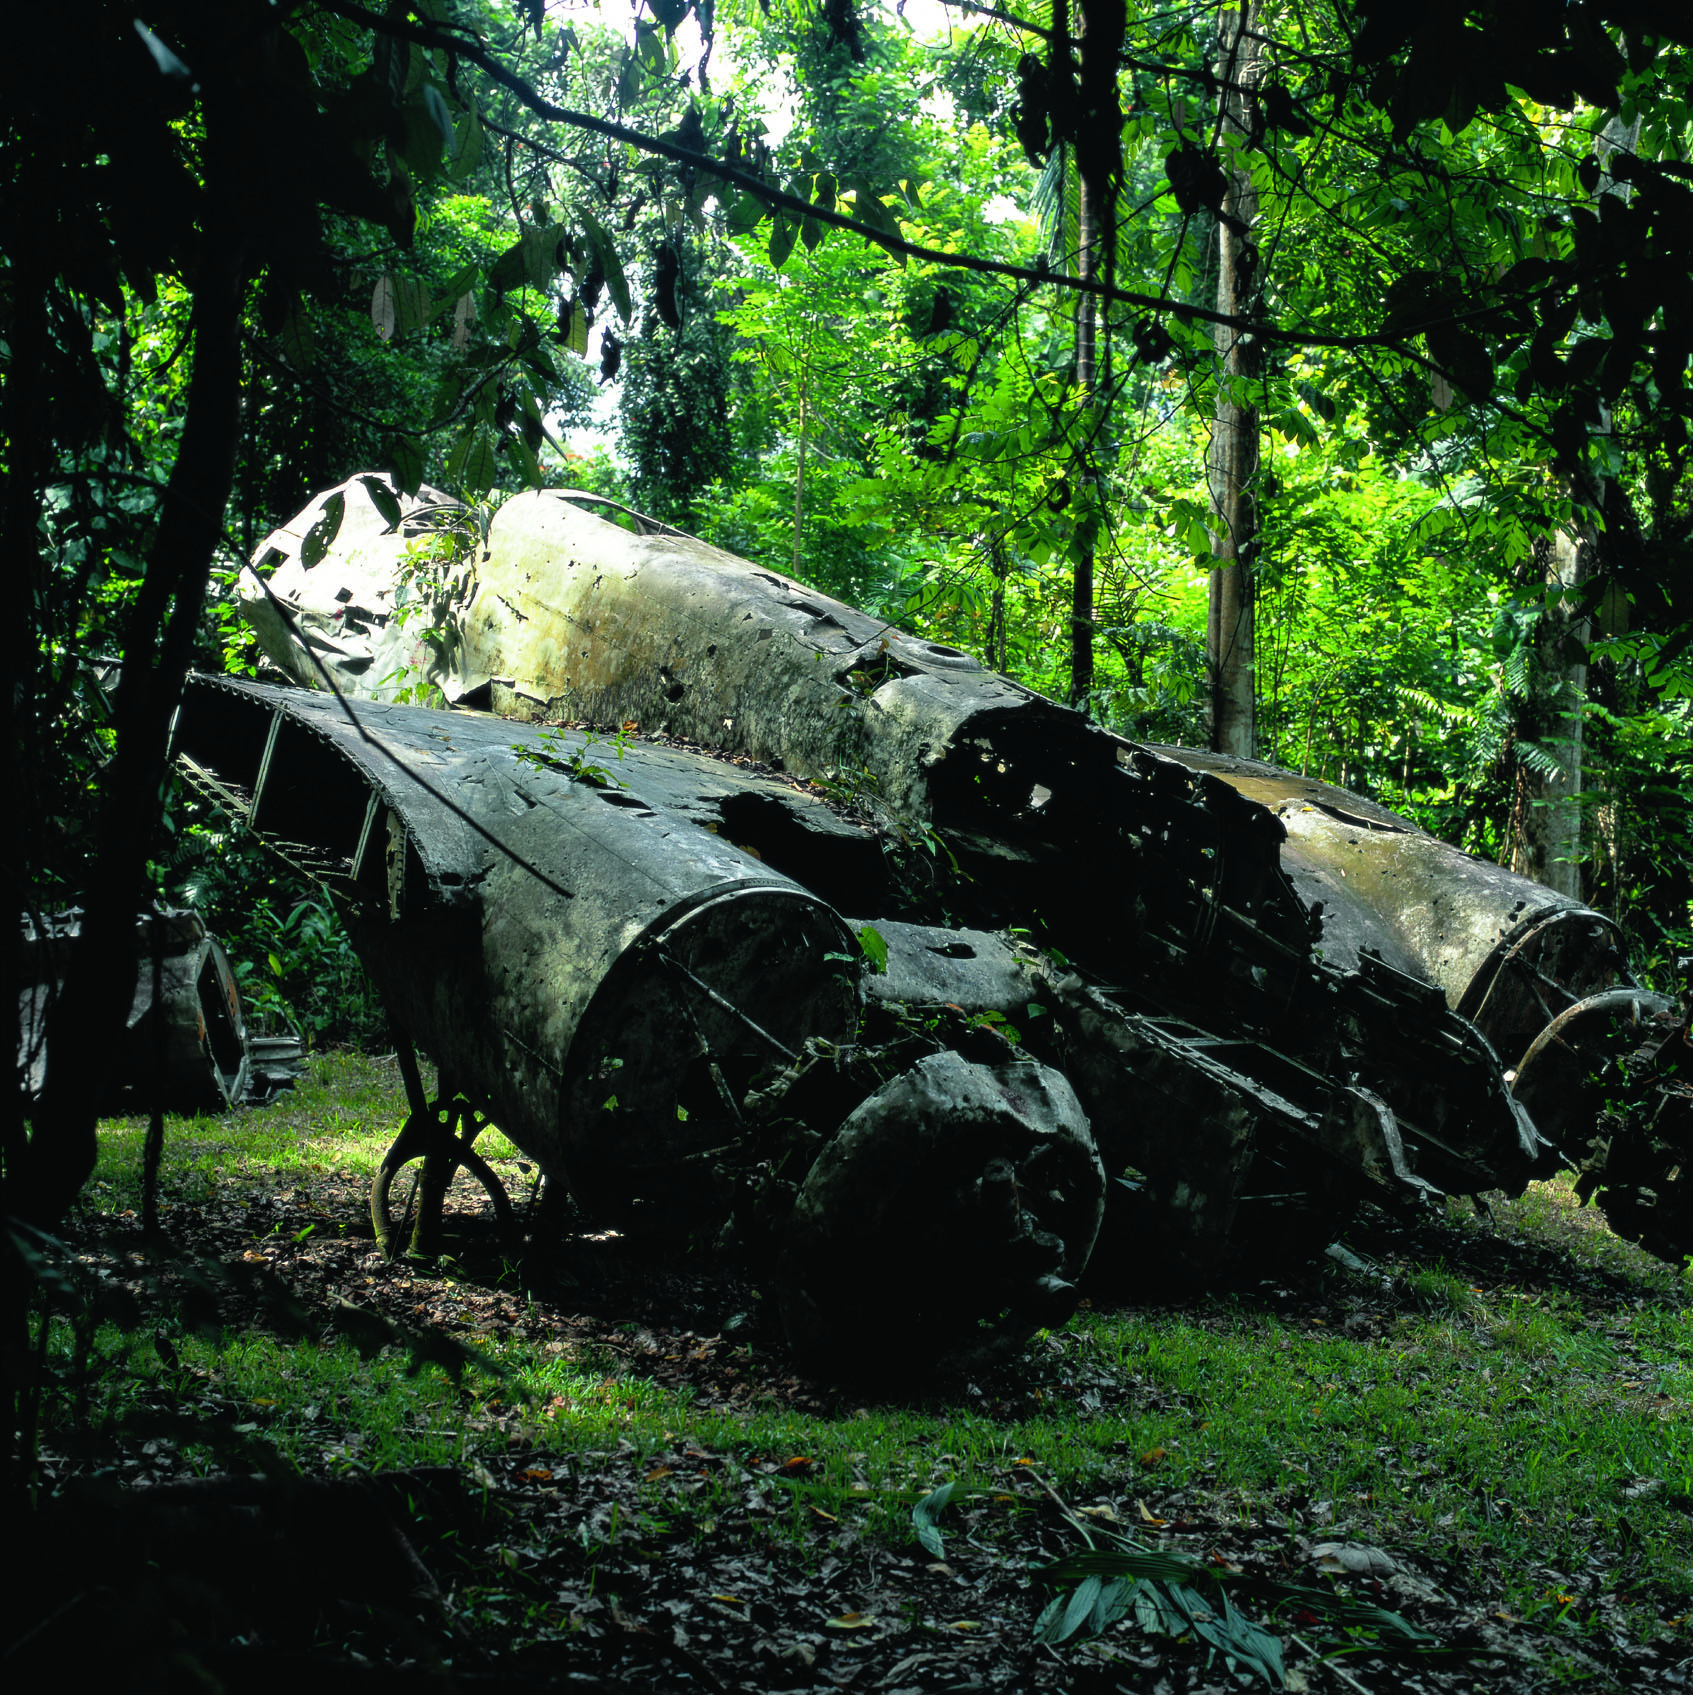 'The Remains of a 'Donryu' Type 100 Heavy Bomber' (2009) by Tsuneo Enari  Courtesy Tokyo Metropolitan Museum of Photography